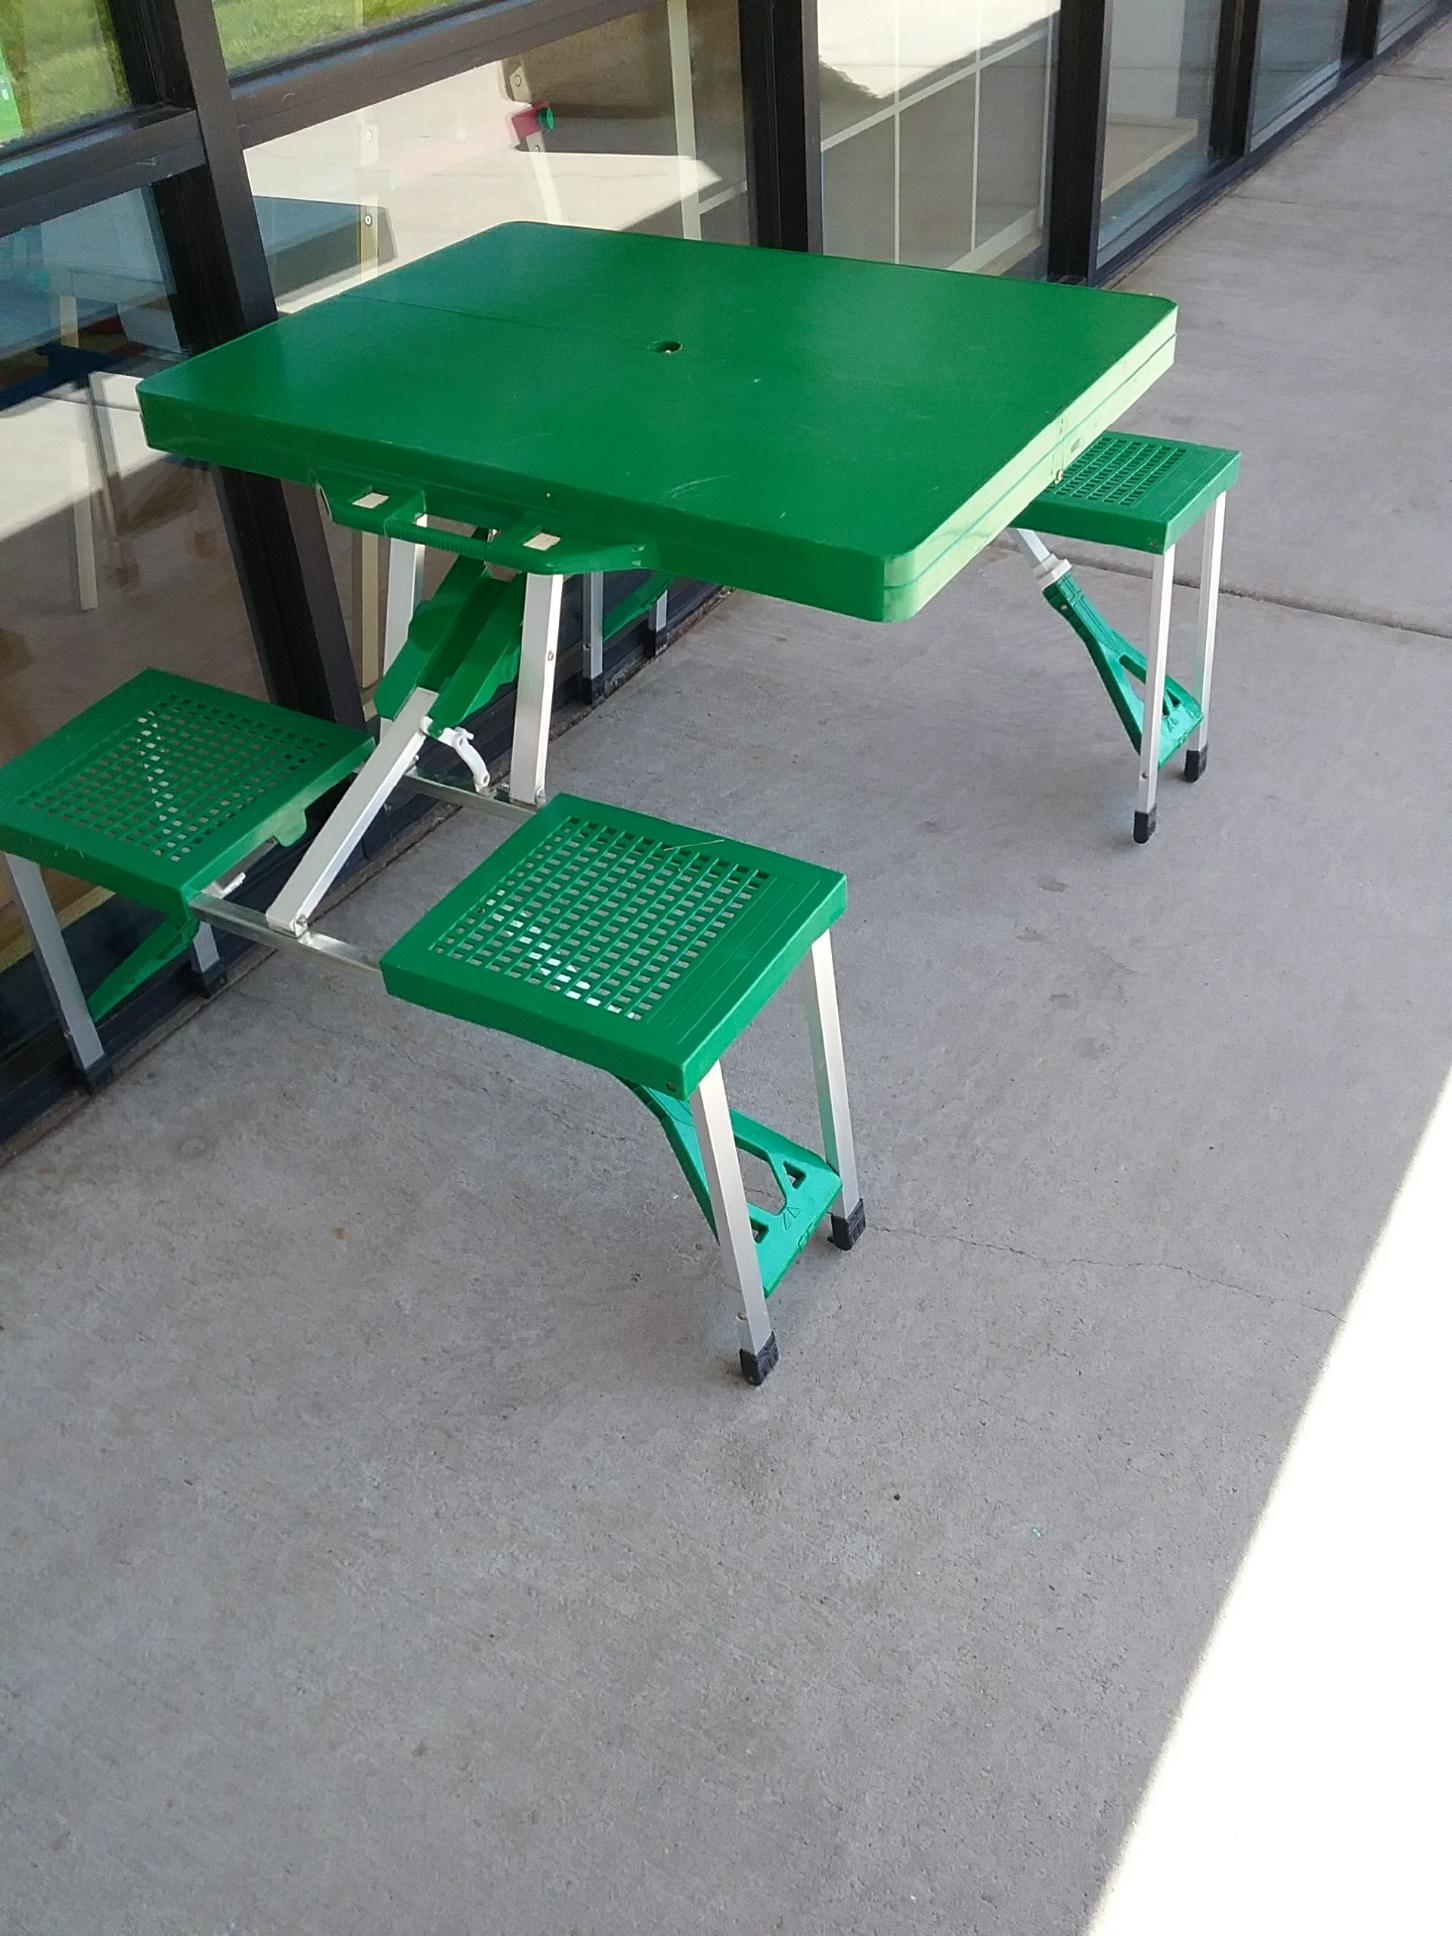 Folding Picnic Table great for camping! Folds flat into is own case.  Retails new at Home Depot for $58.  NO SHIPPING-in store pick up only